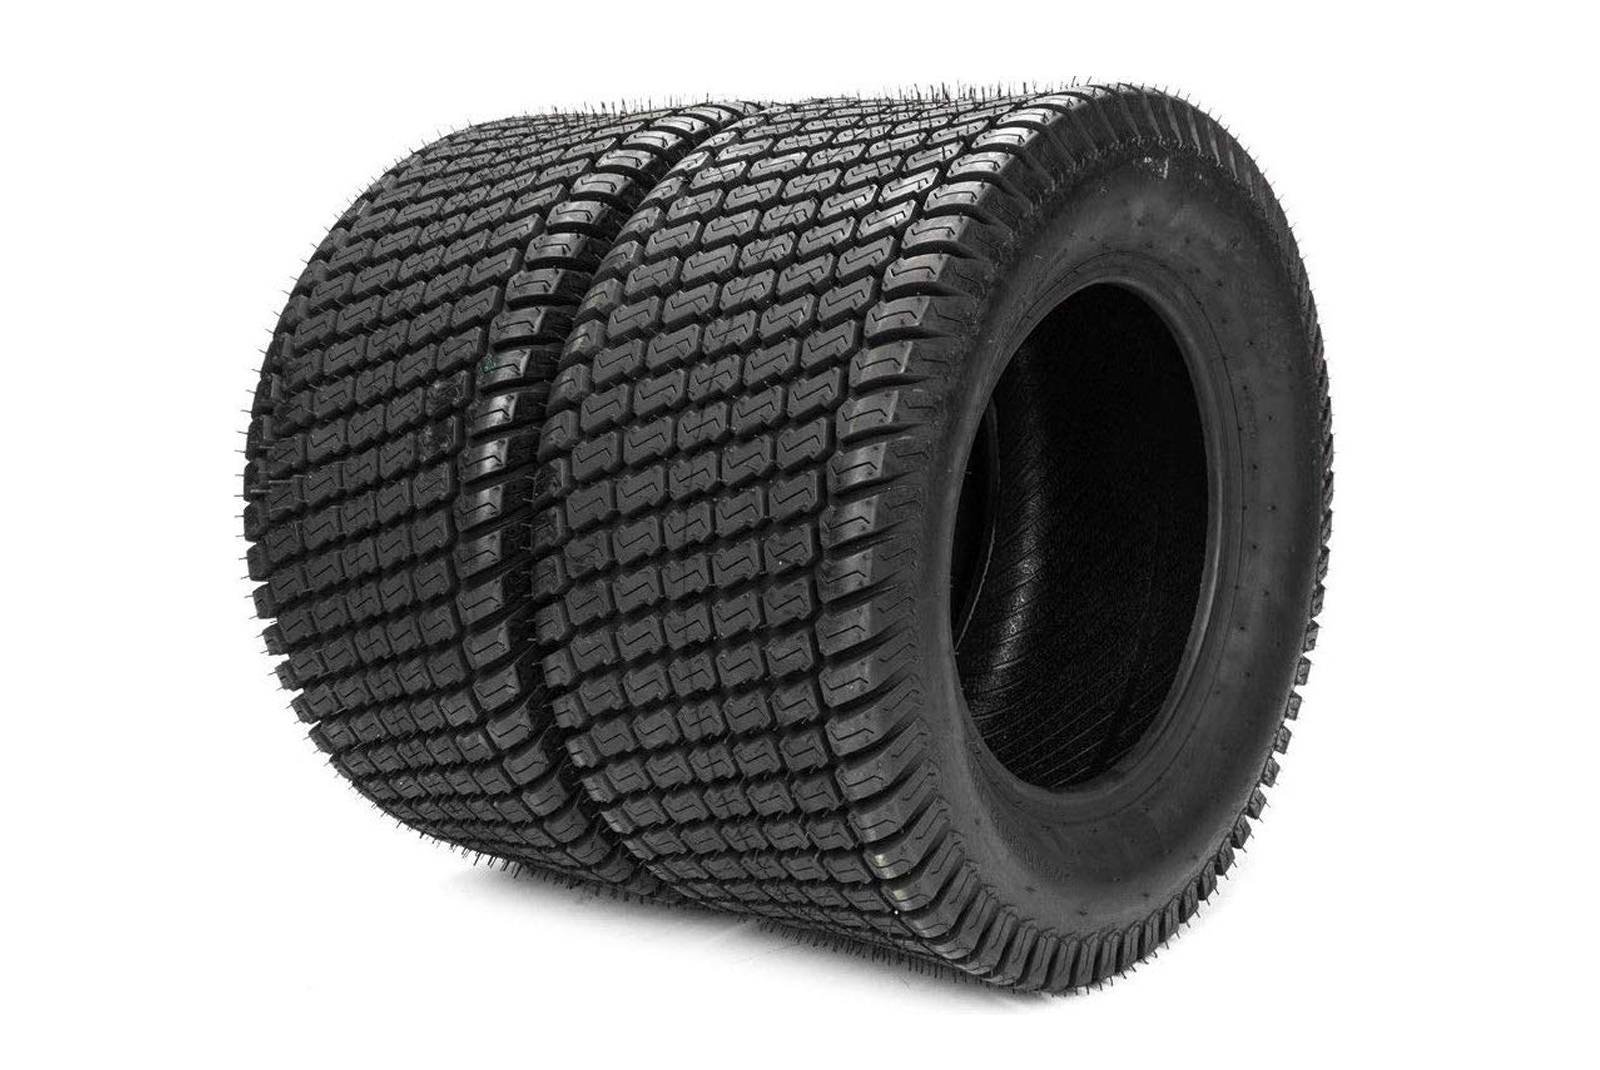 2 tubeless riding mower ProMaster tires 24X9.50-12 4 ply